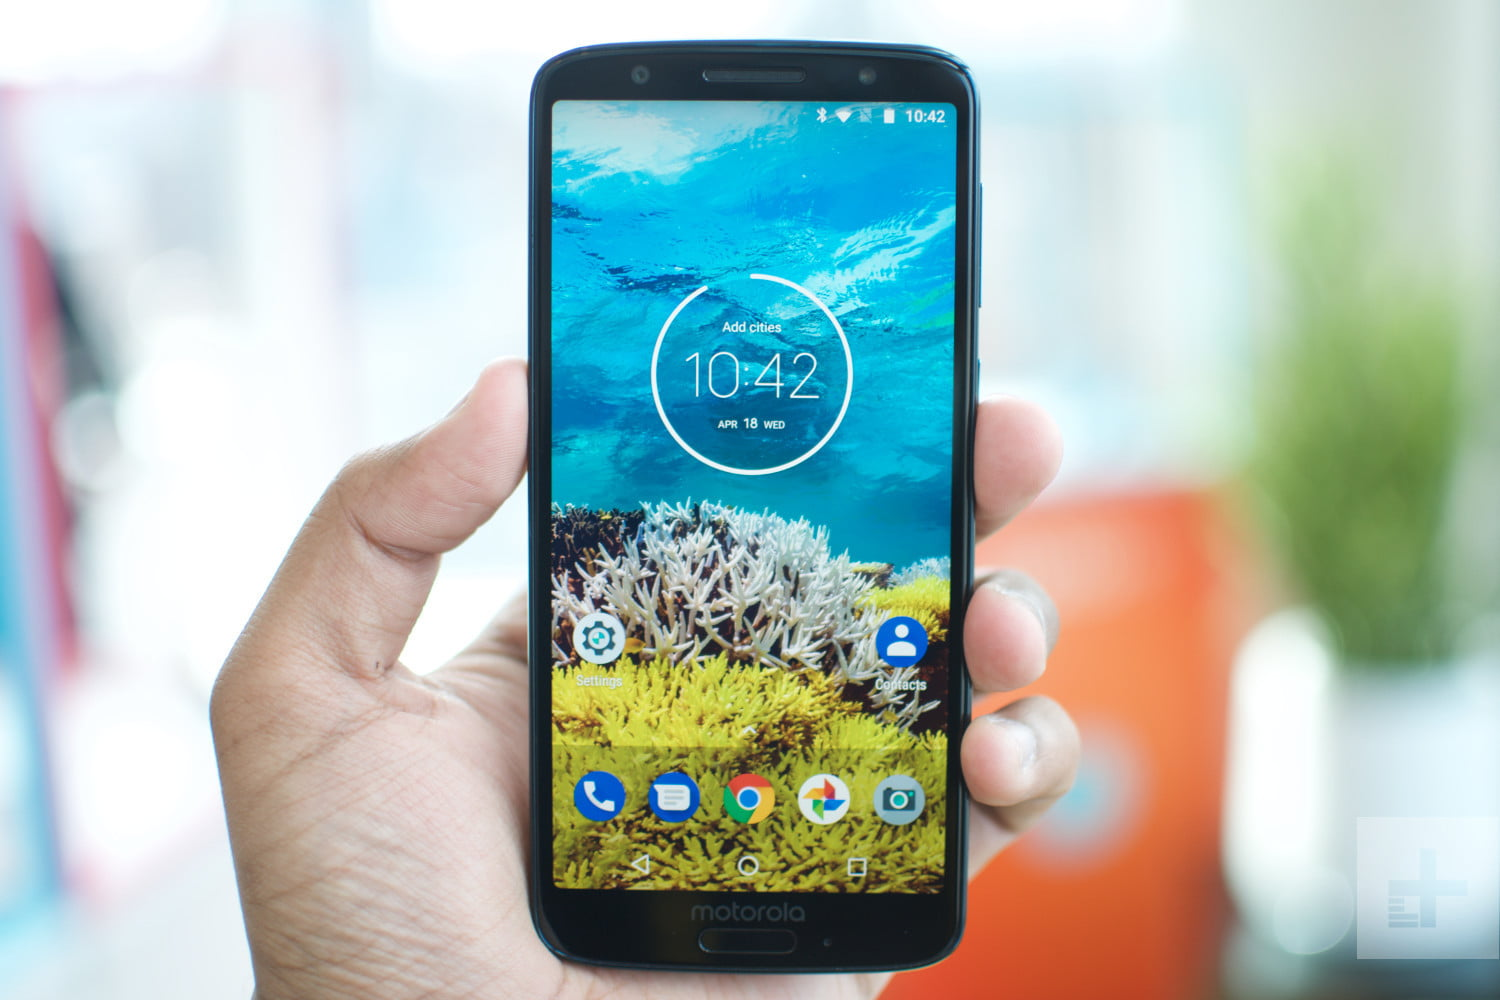 Motorola's Moto G6, Moto G6 Play: Everything You Need to Know